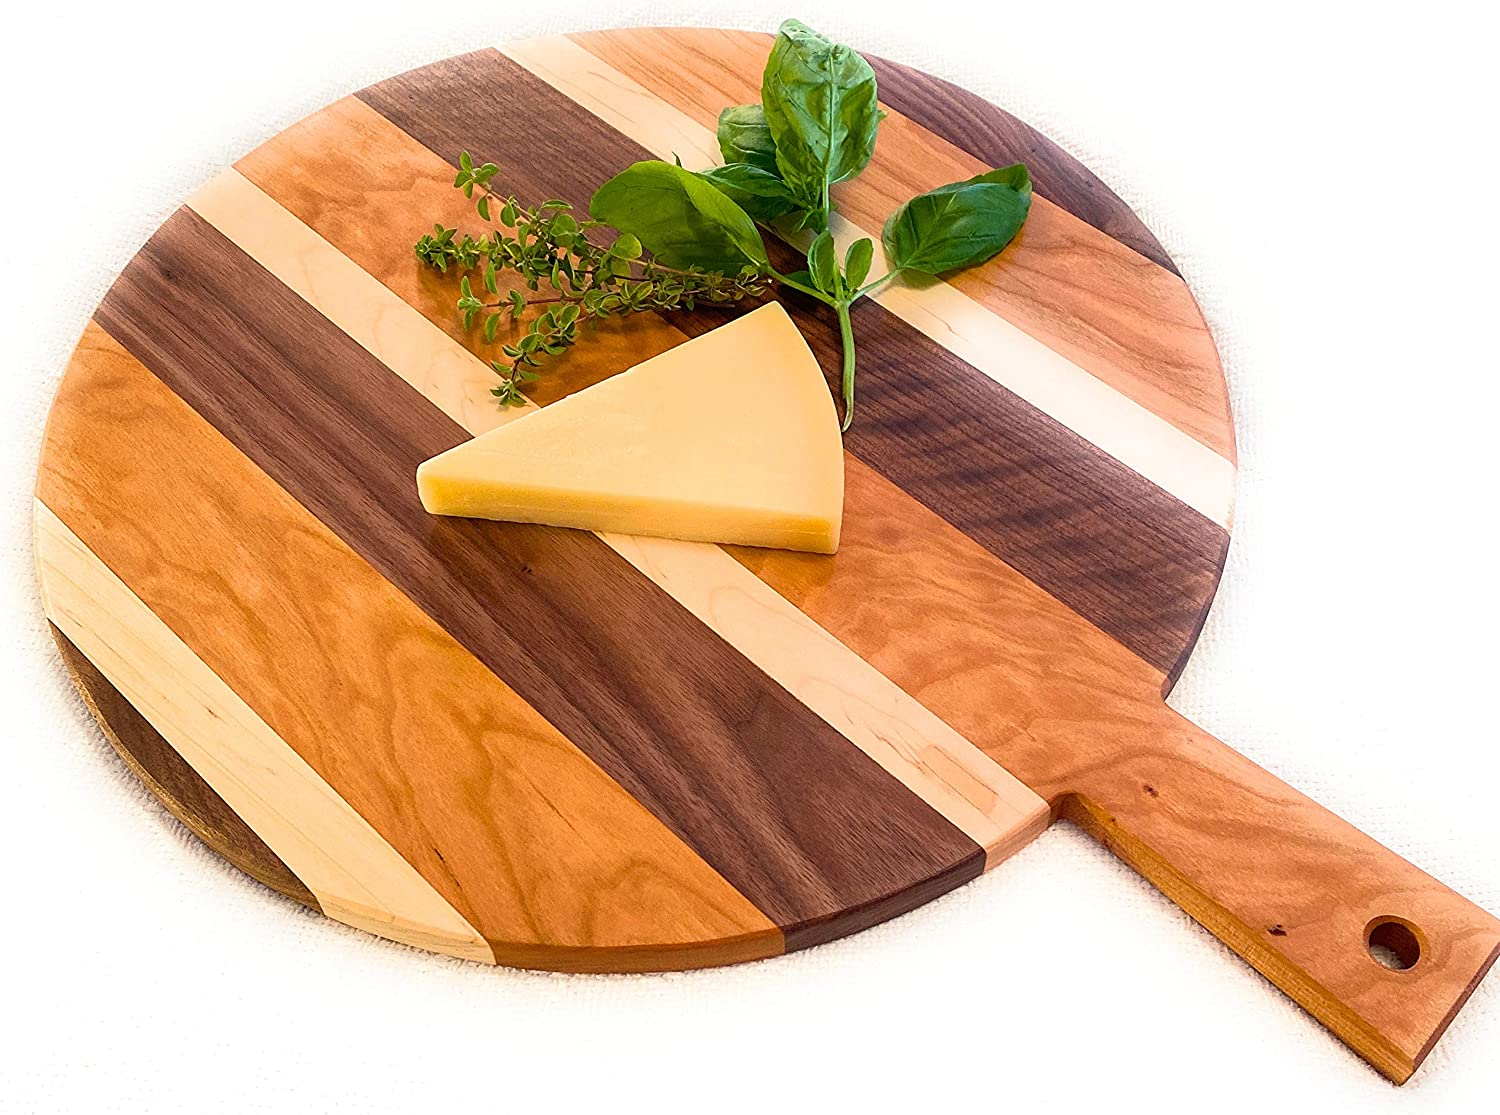 "Large Round Charcuterie Cheese Board Hand Made in USA from East Coast Hardwood 18"" round Cutting Board with Handle. Beautiful Serving Tray, Farmhouse Decor, Serving Platter for Appetizers."